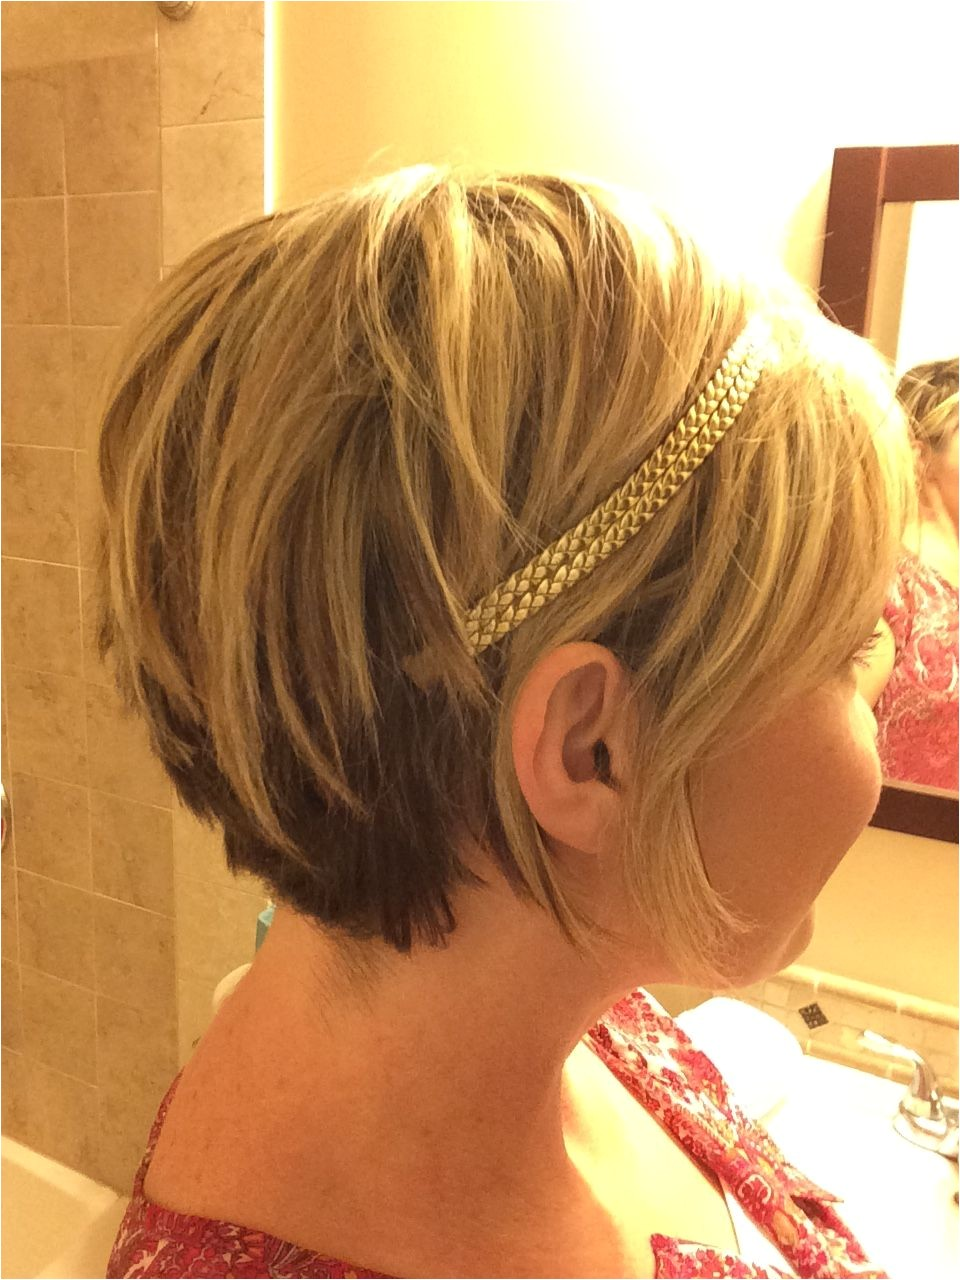 Cute cut with the accessory